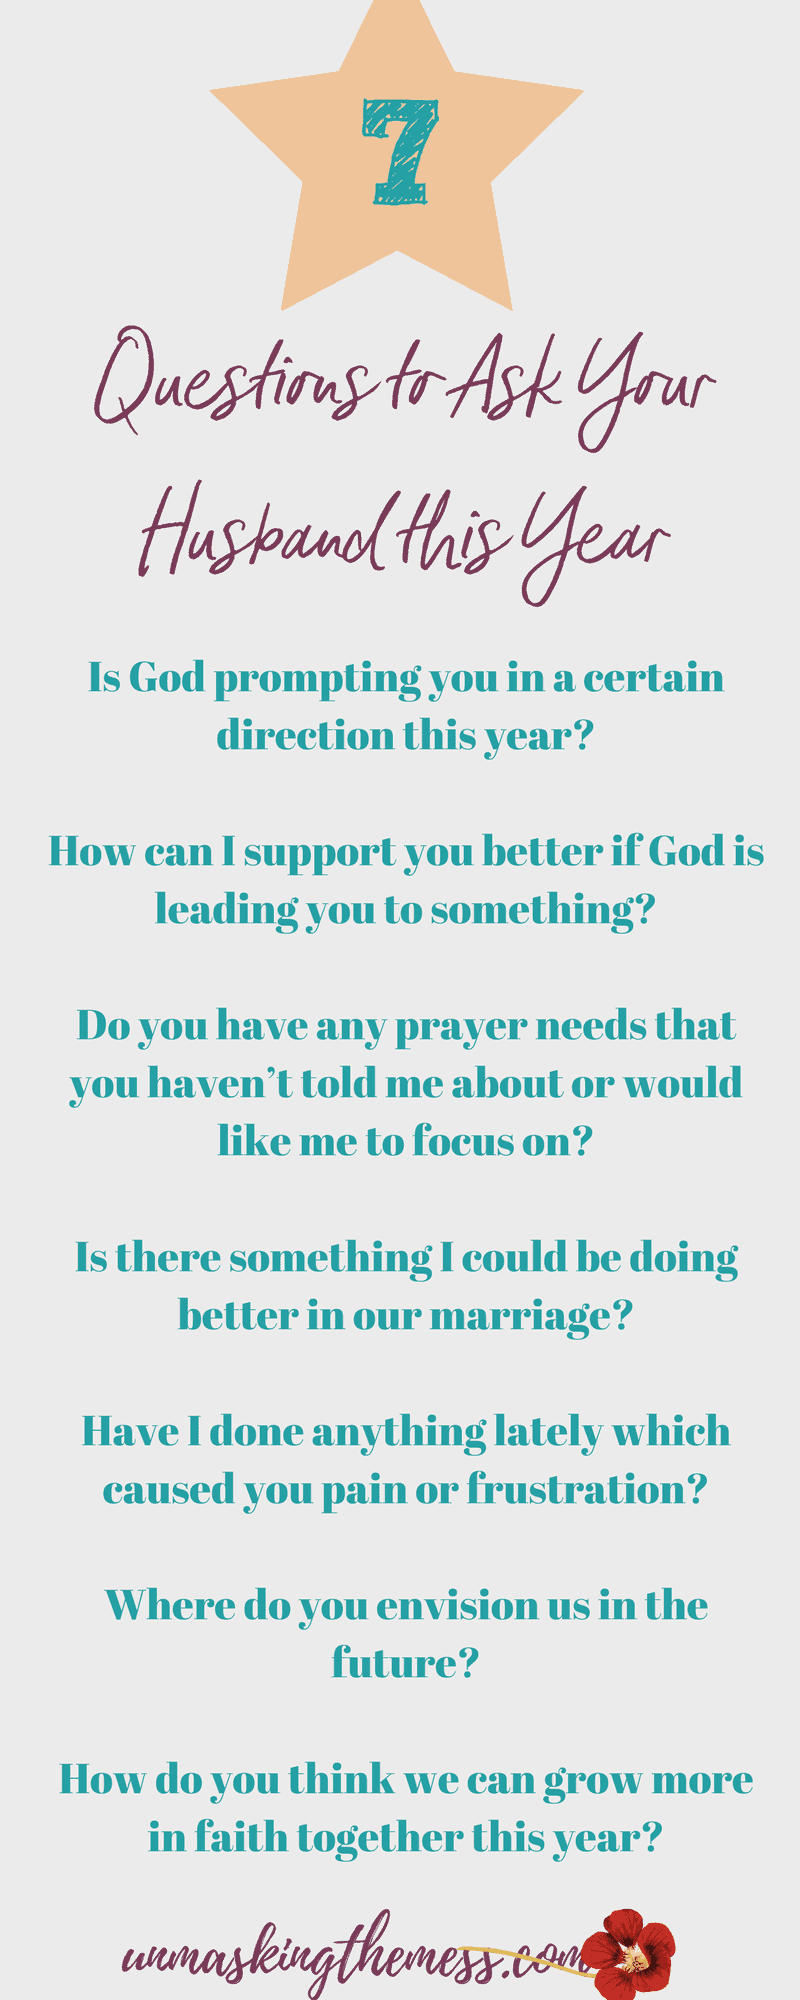 7 Questions I'm Asking My Husband This Year. In order to know how God is leading my husband in his faith life, I have these 7 questions to ask husband this year. Getting in tune with God and my spouse #communication #Christian #marriage #connection #God #faith